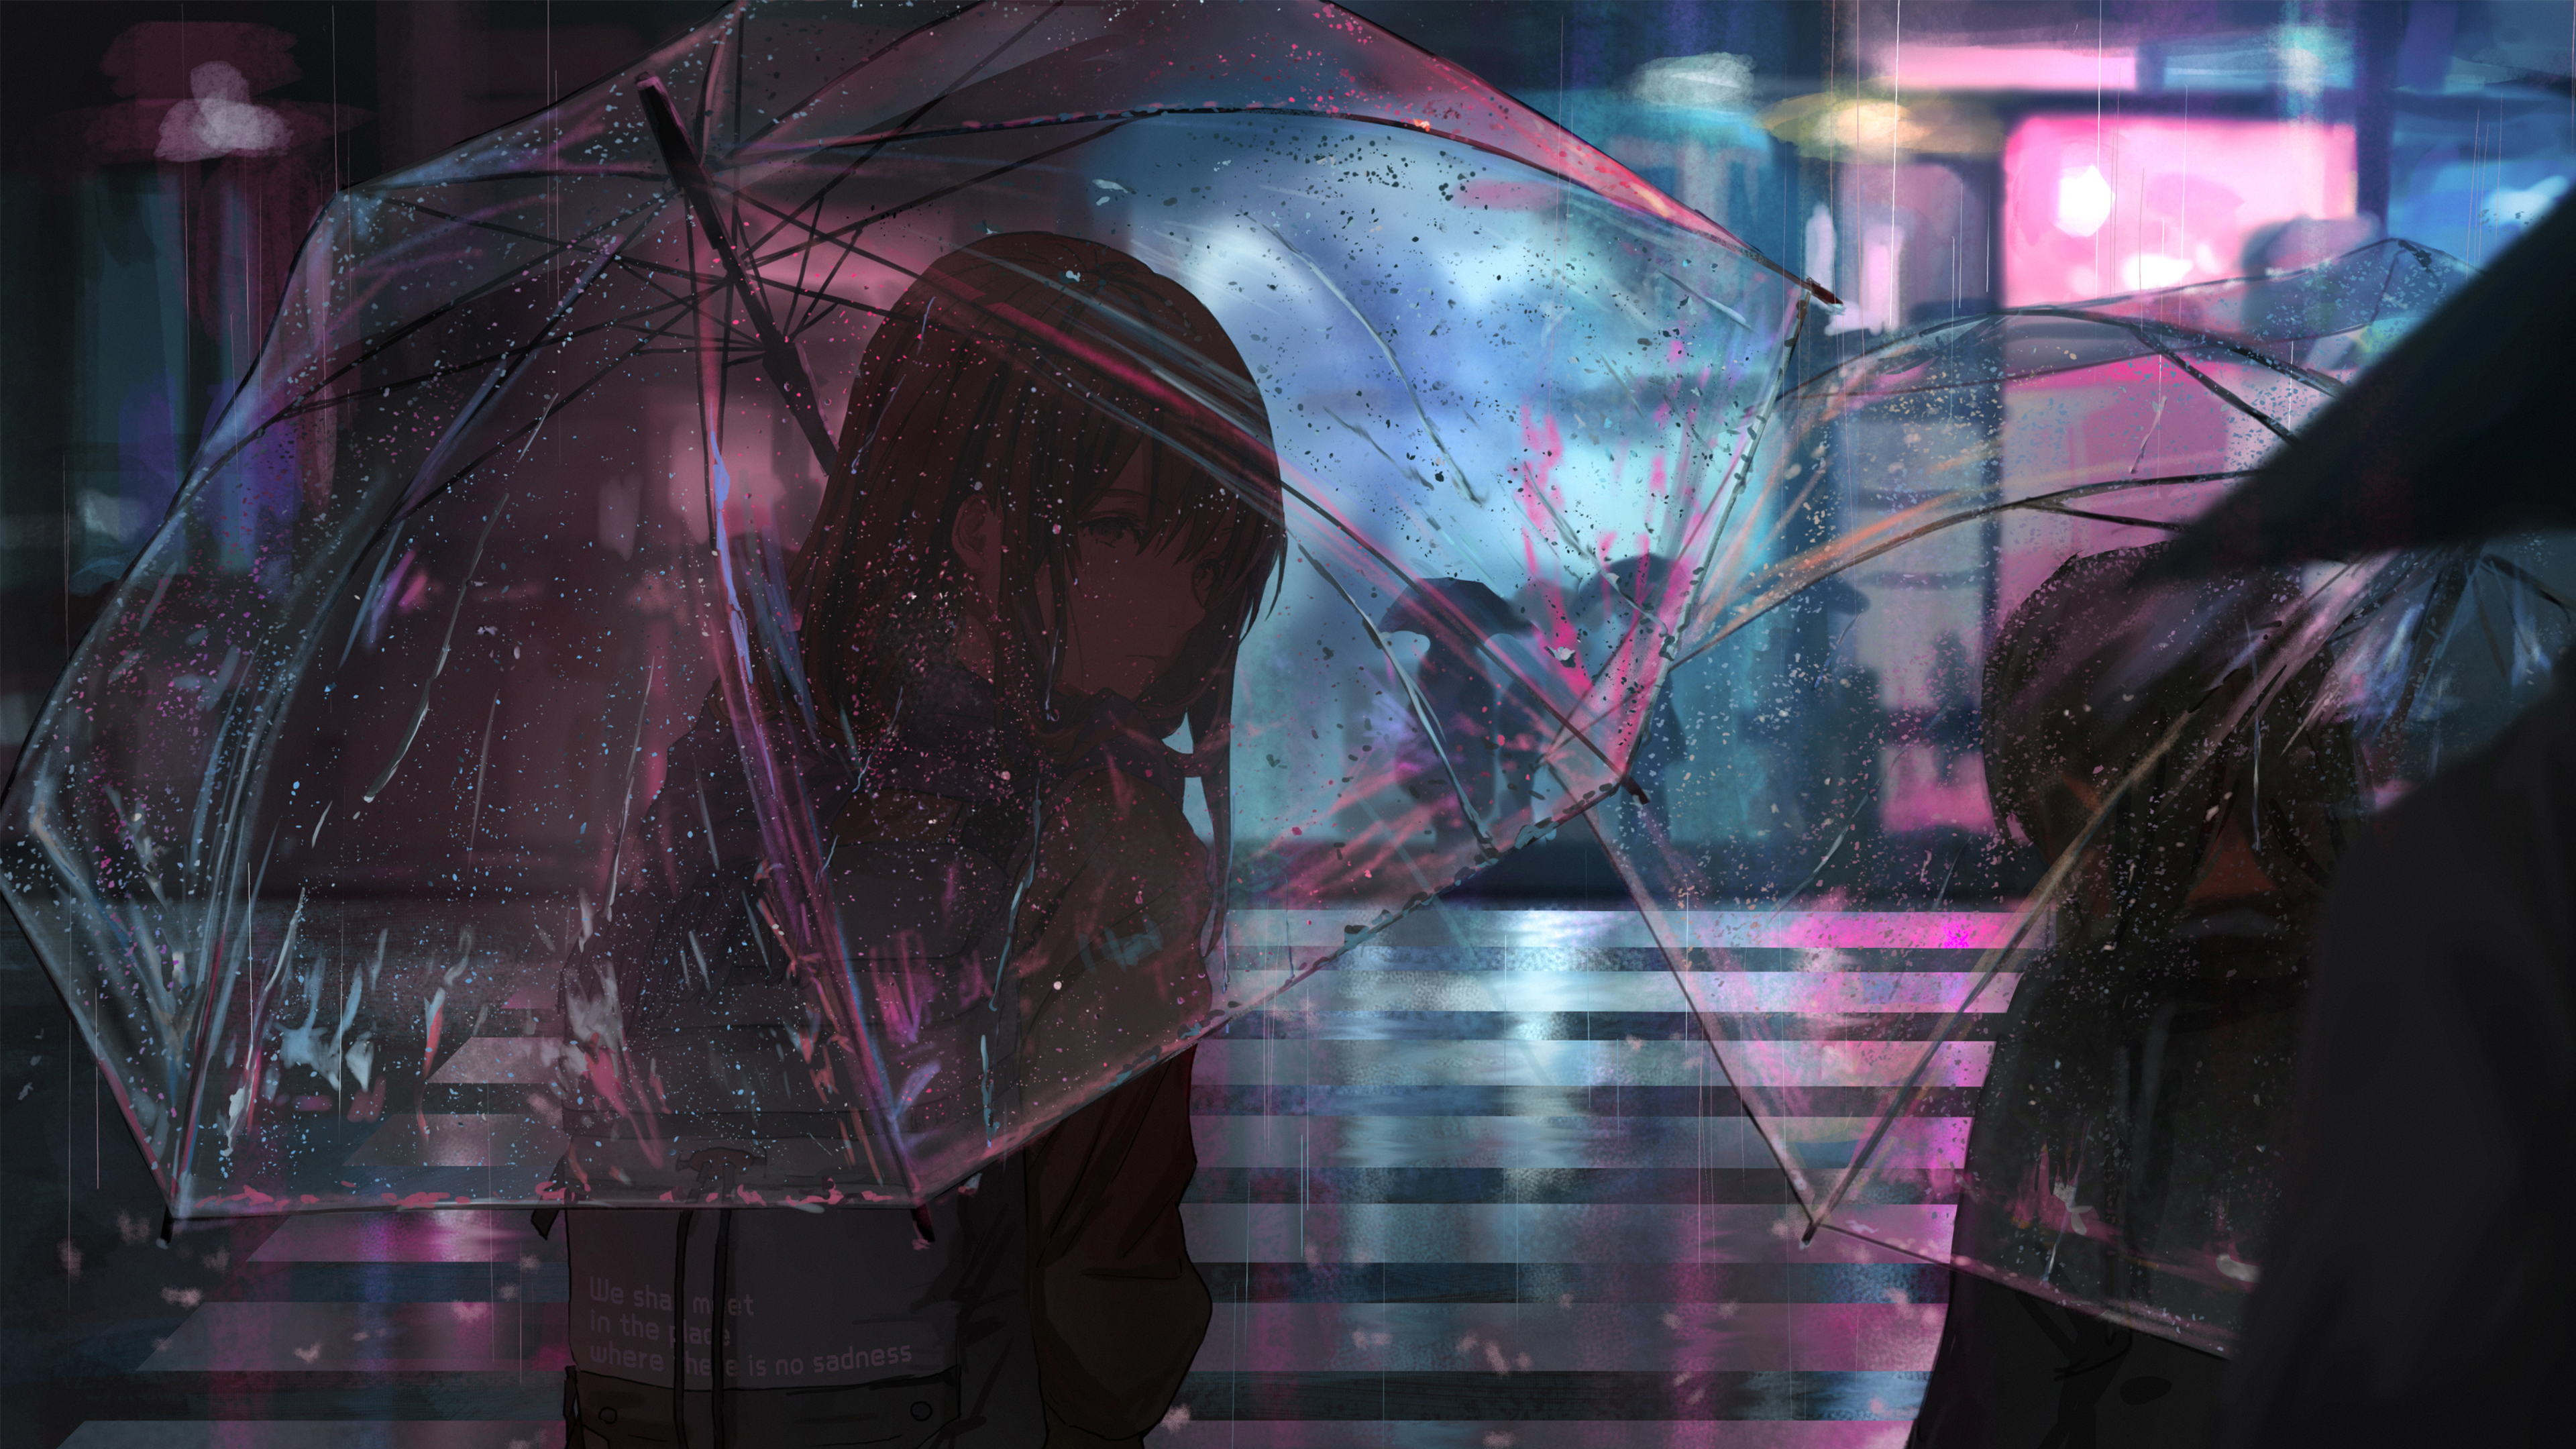 Anime girl in rain with umbrella 4k hd anime 4k - Anime rain wallpaper ...